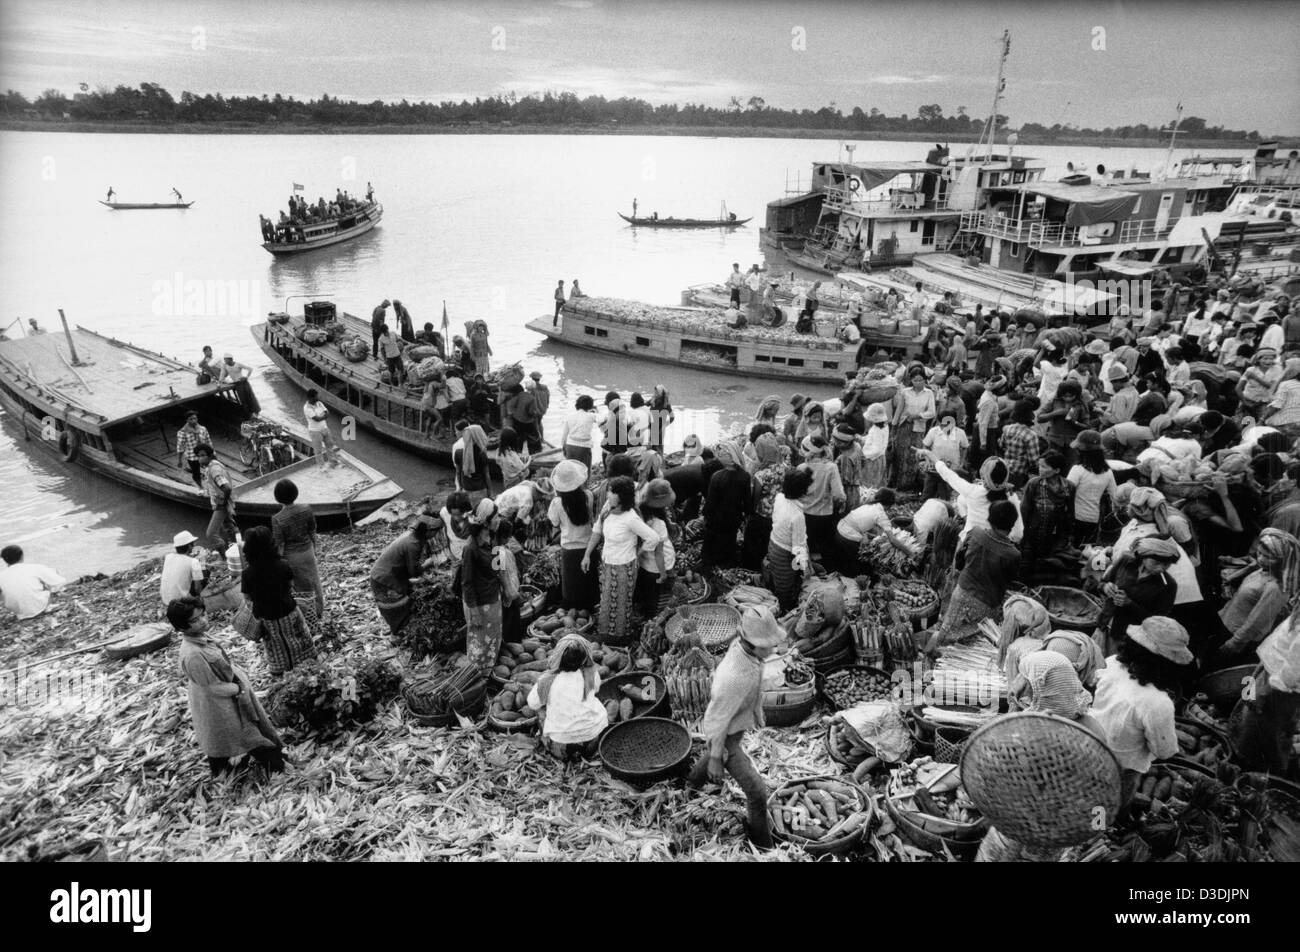 Cambodia: Farmers and traders use the Mekong river to bring their produce to this crowded market in Phnom Penh. - Stock Image